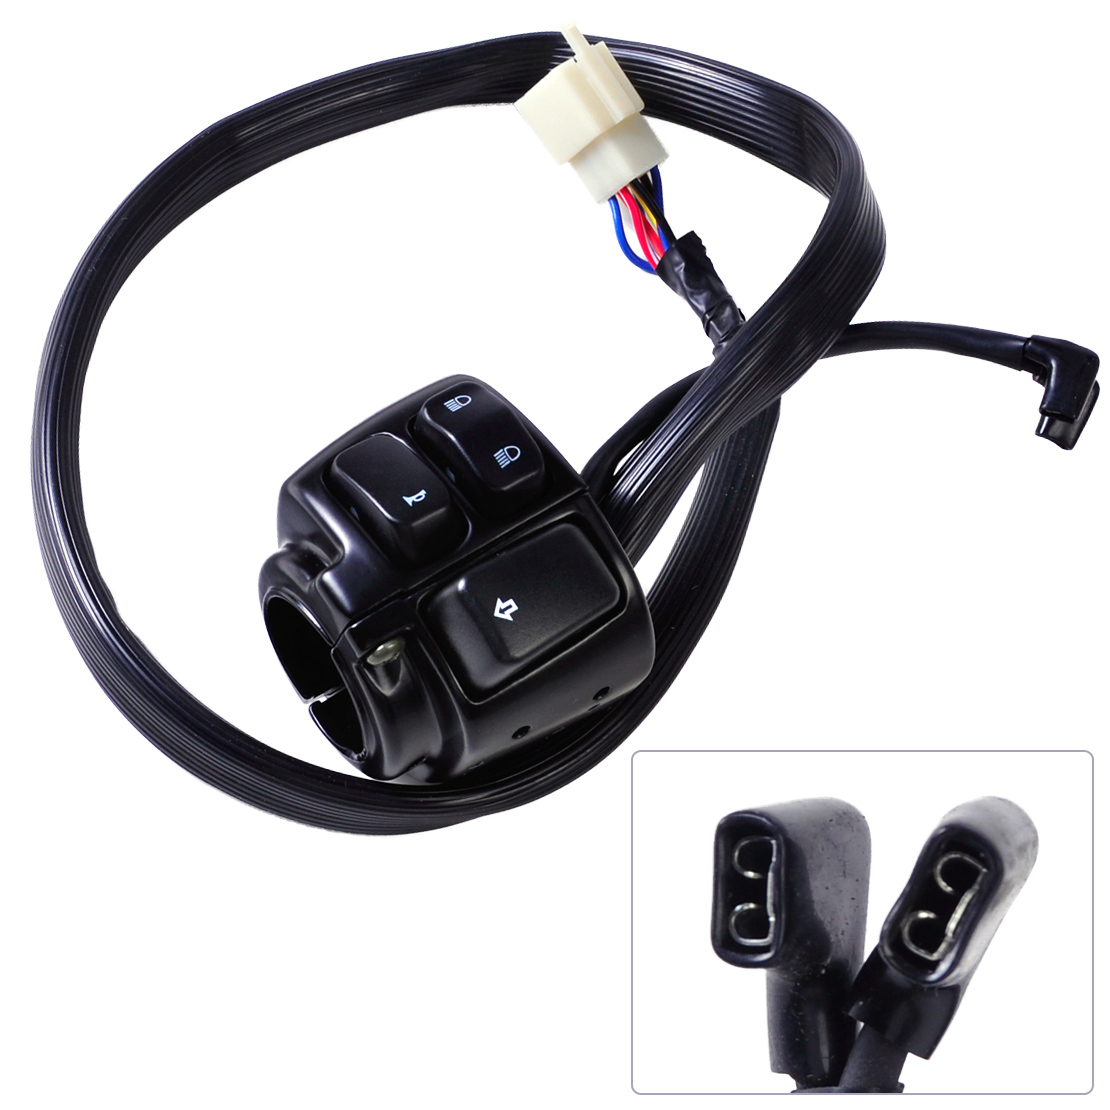 beler Motorcycle 1 Handlebar Horn Hi/Lo Beam Left Turn Signals Switch Wire Harness for Harley Davidson Softail Dyna Sportster